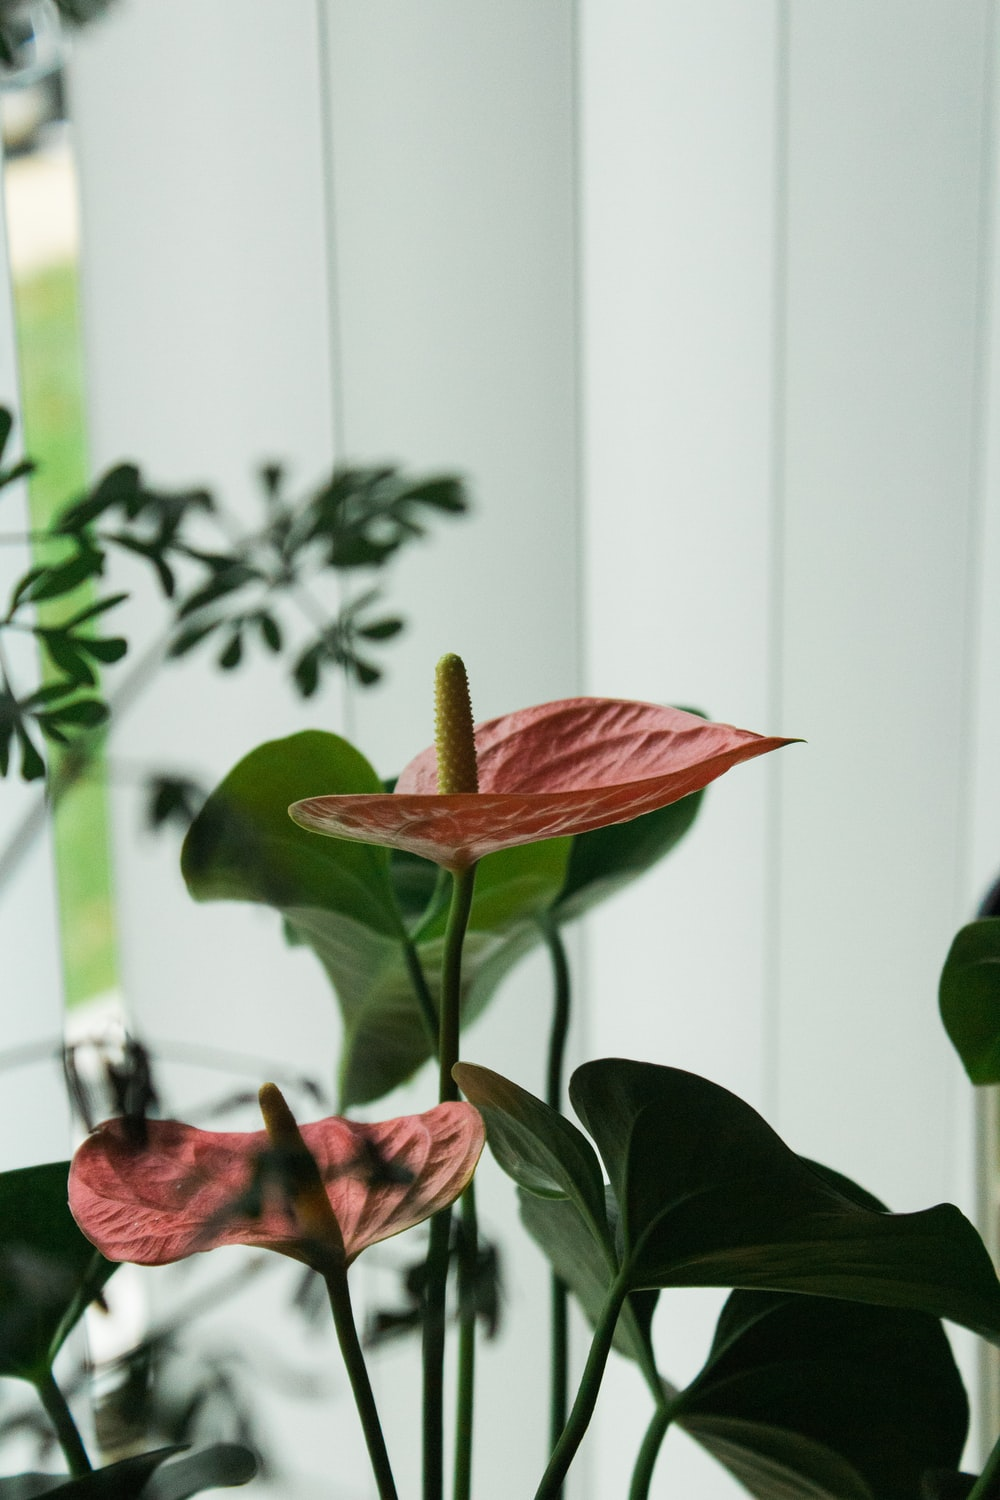 blooming red anthurium flower